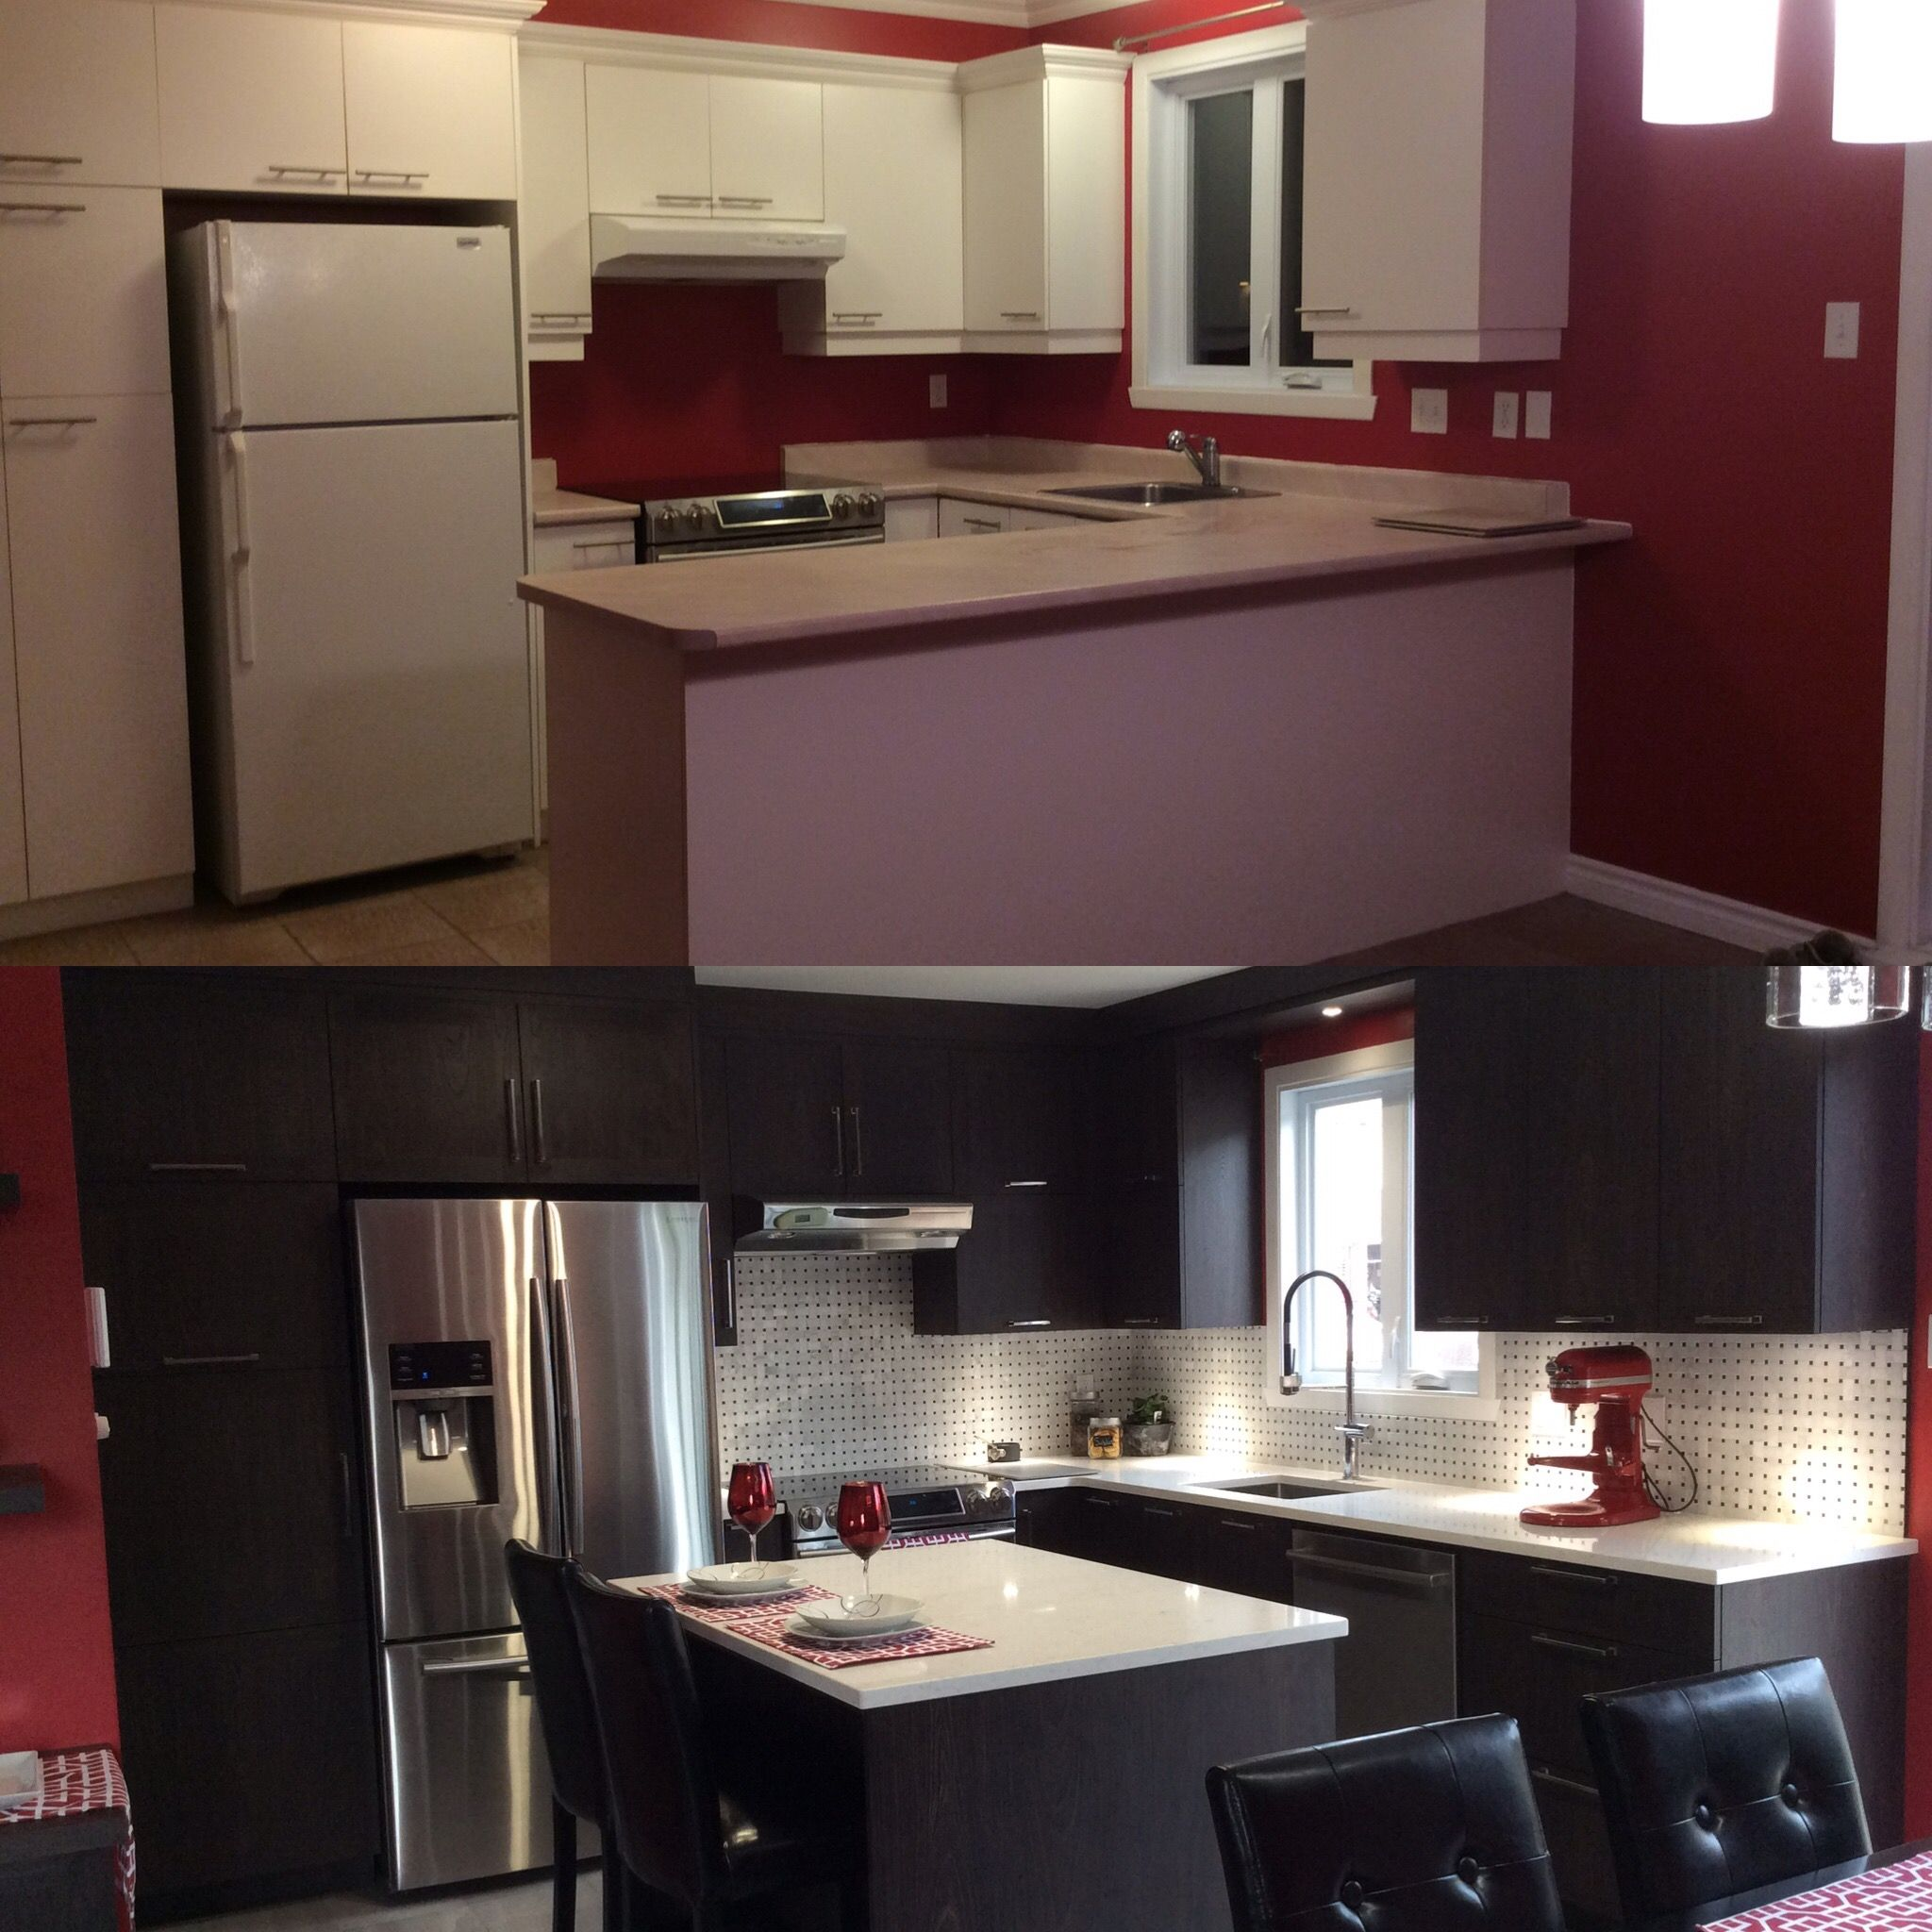 Before and after on kitchen remodel